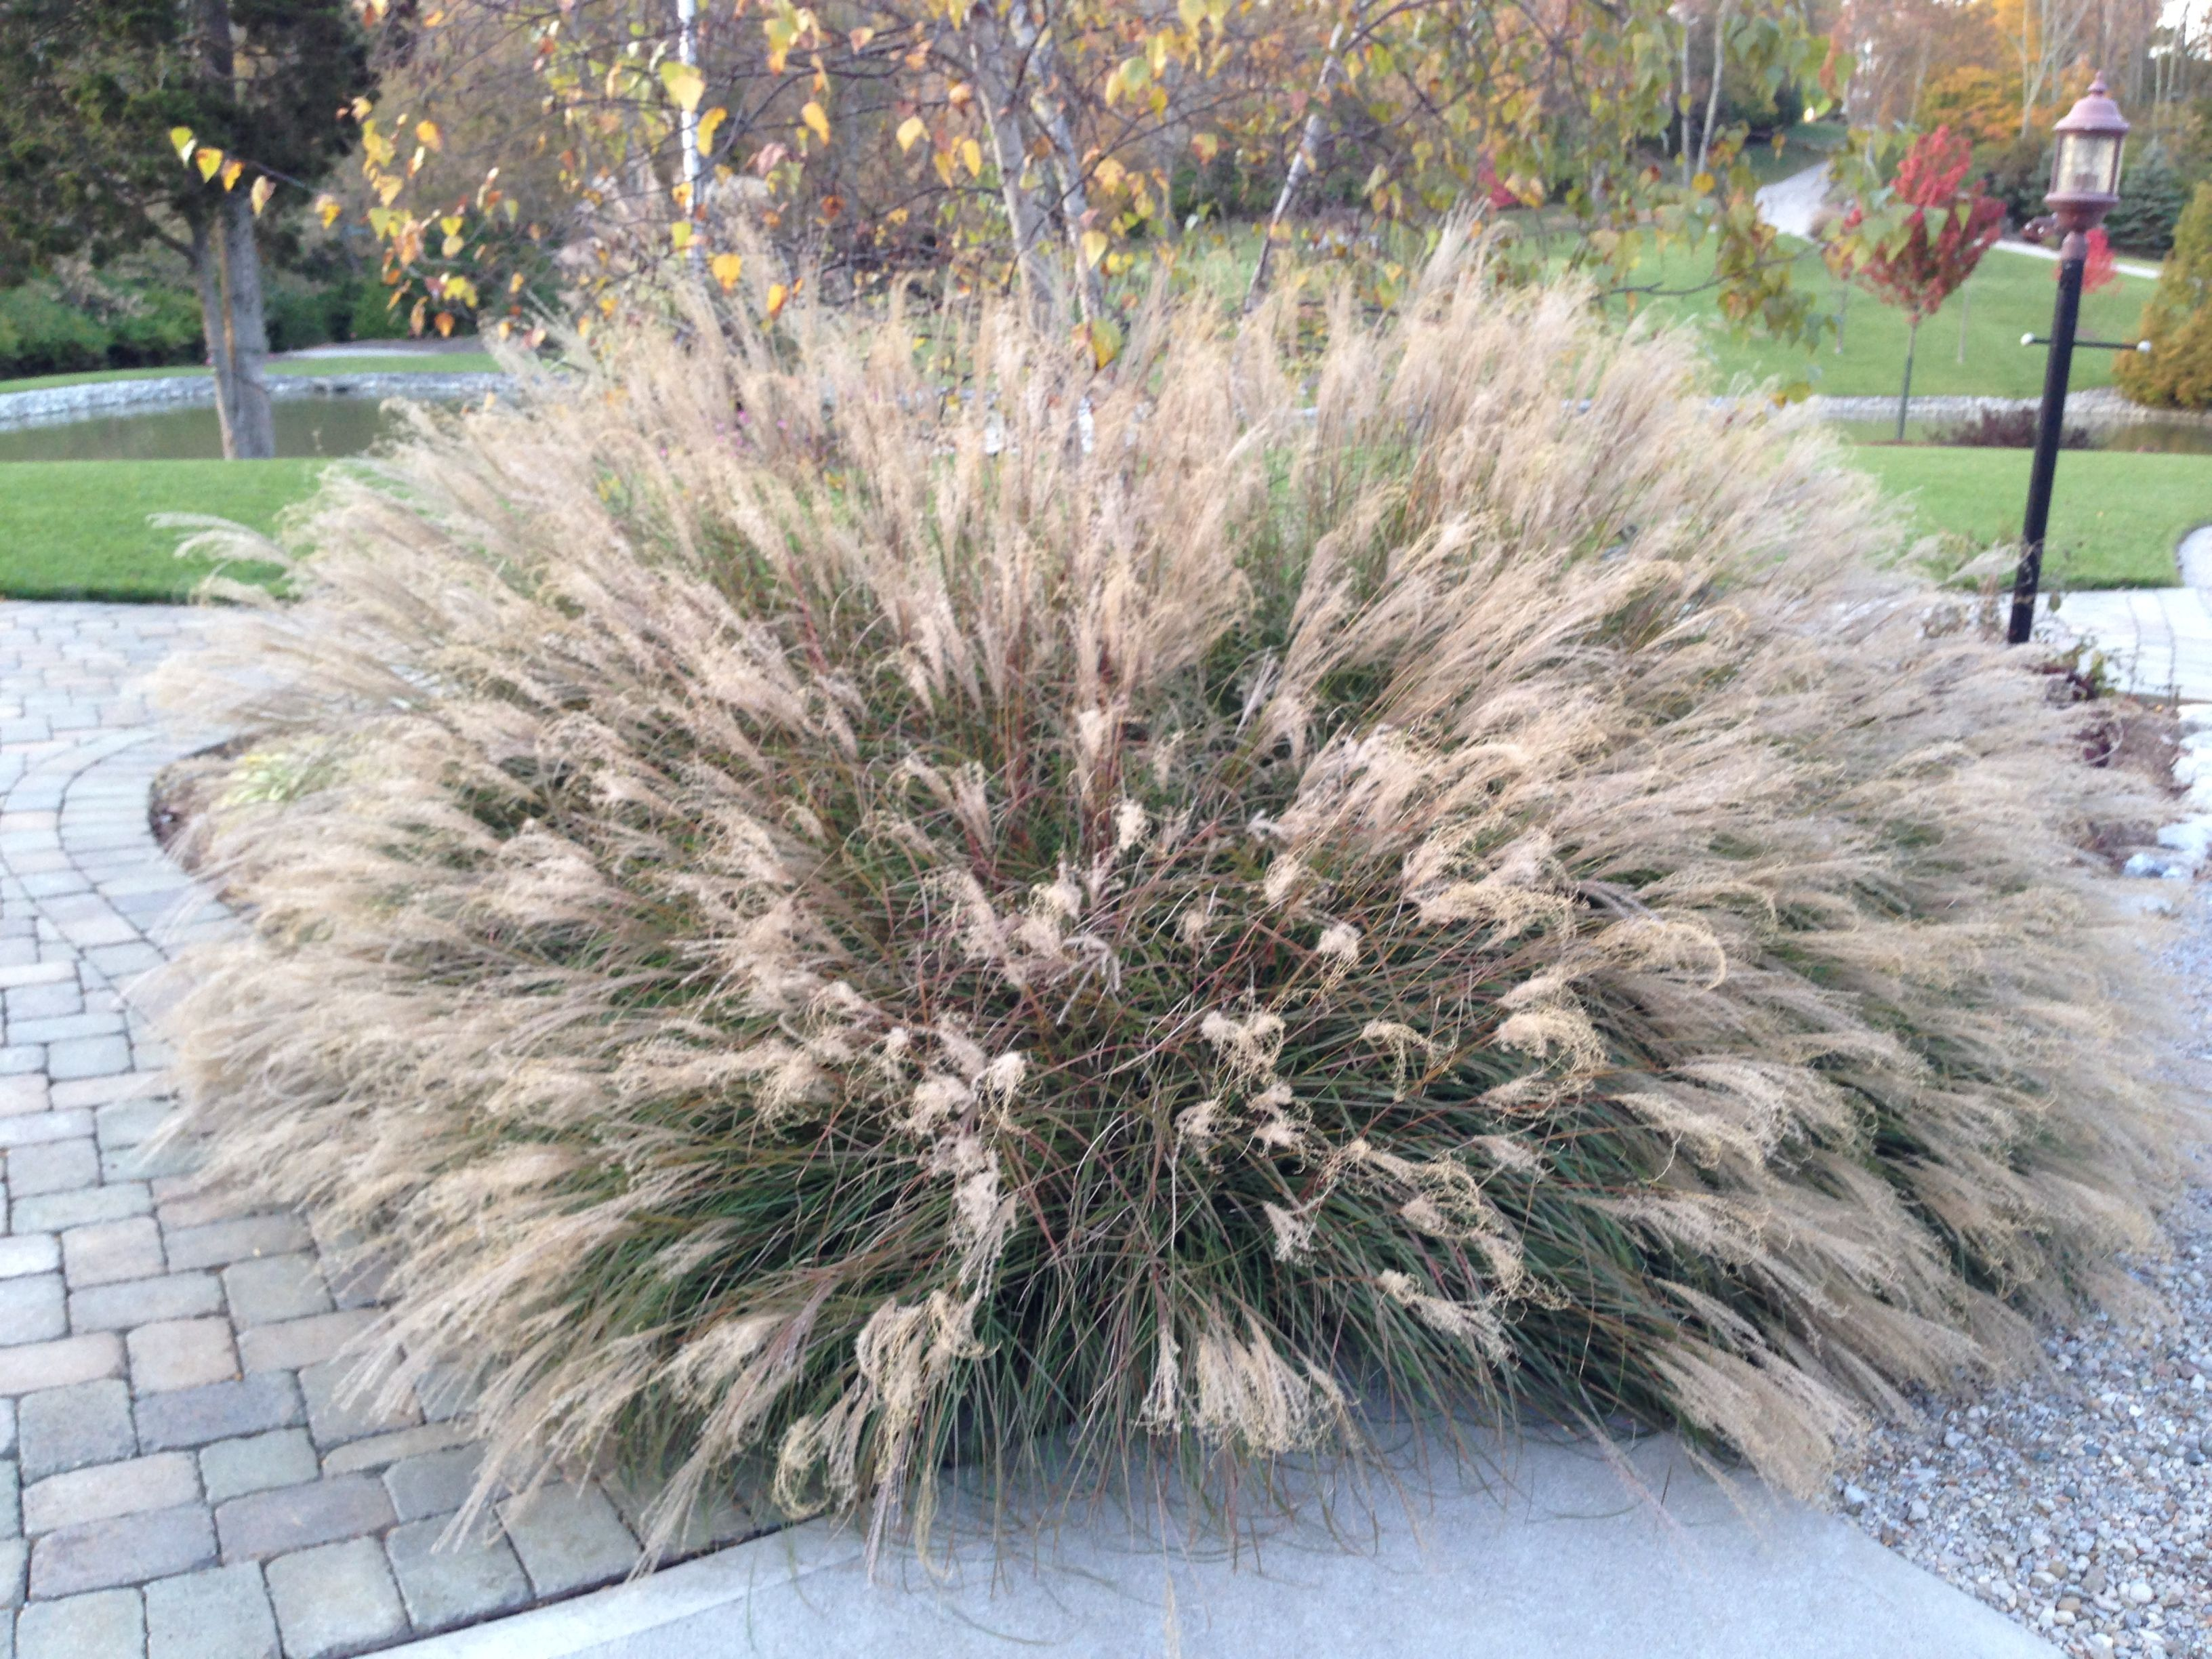 Little Kitten Maiden Grass A Lush Foliage Clump Turning Gold In Fall Blonde Flower Spikes Just Inches Ab Backyard Plants Monrovia Plants Ornamental Grasses